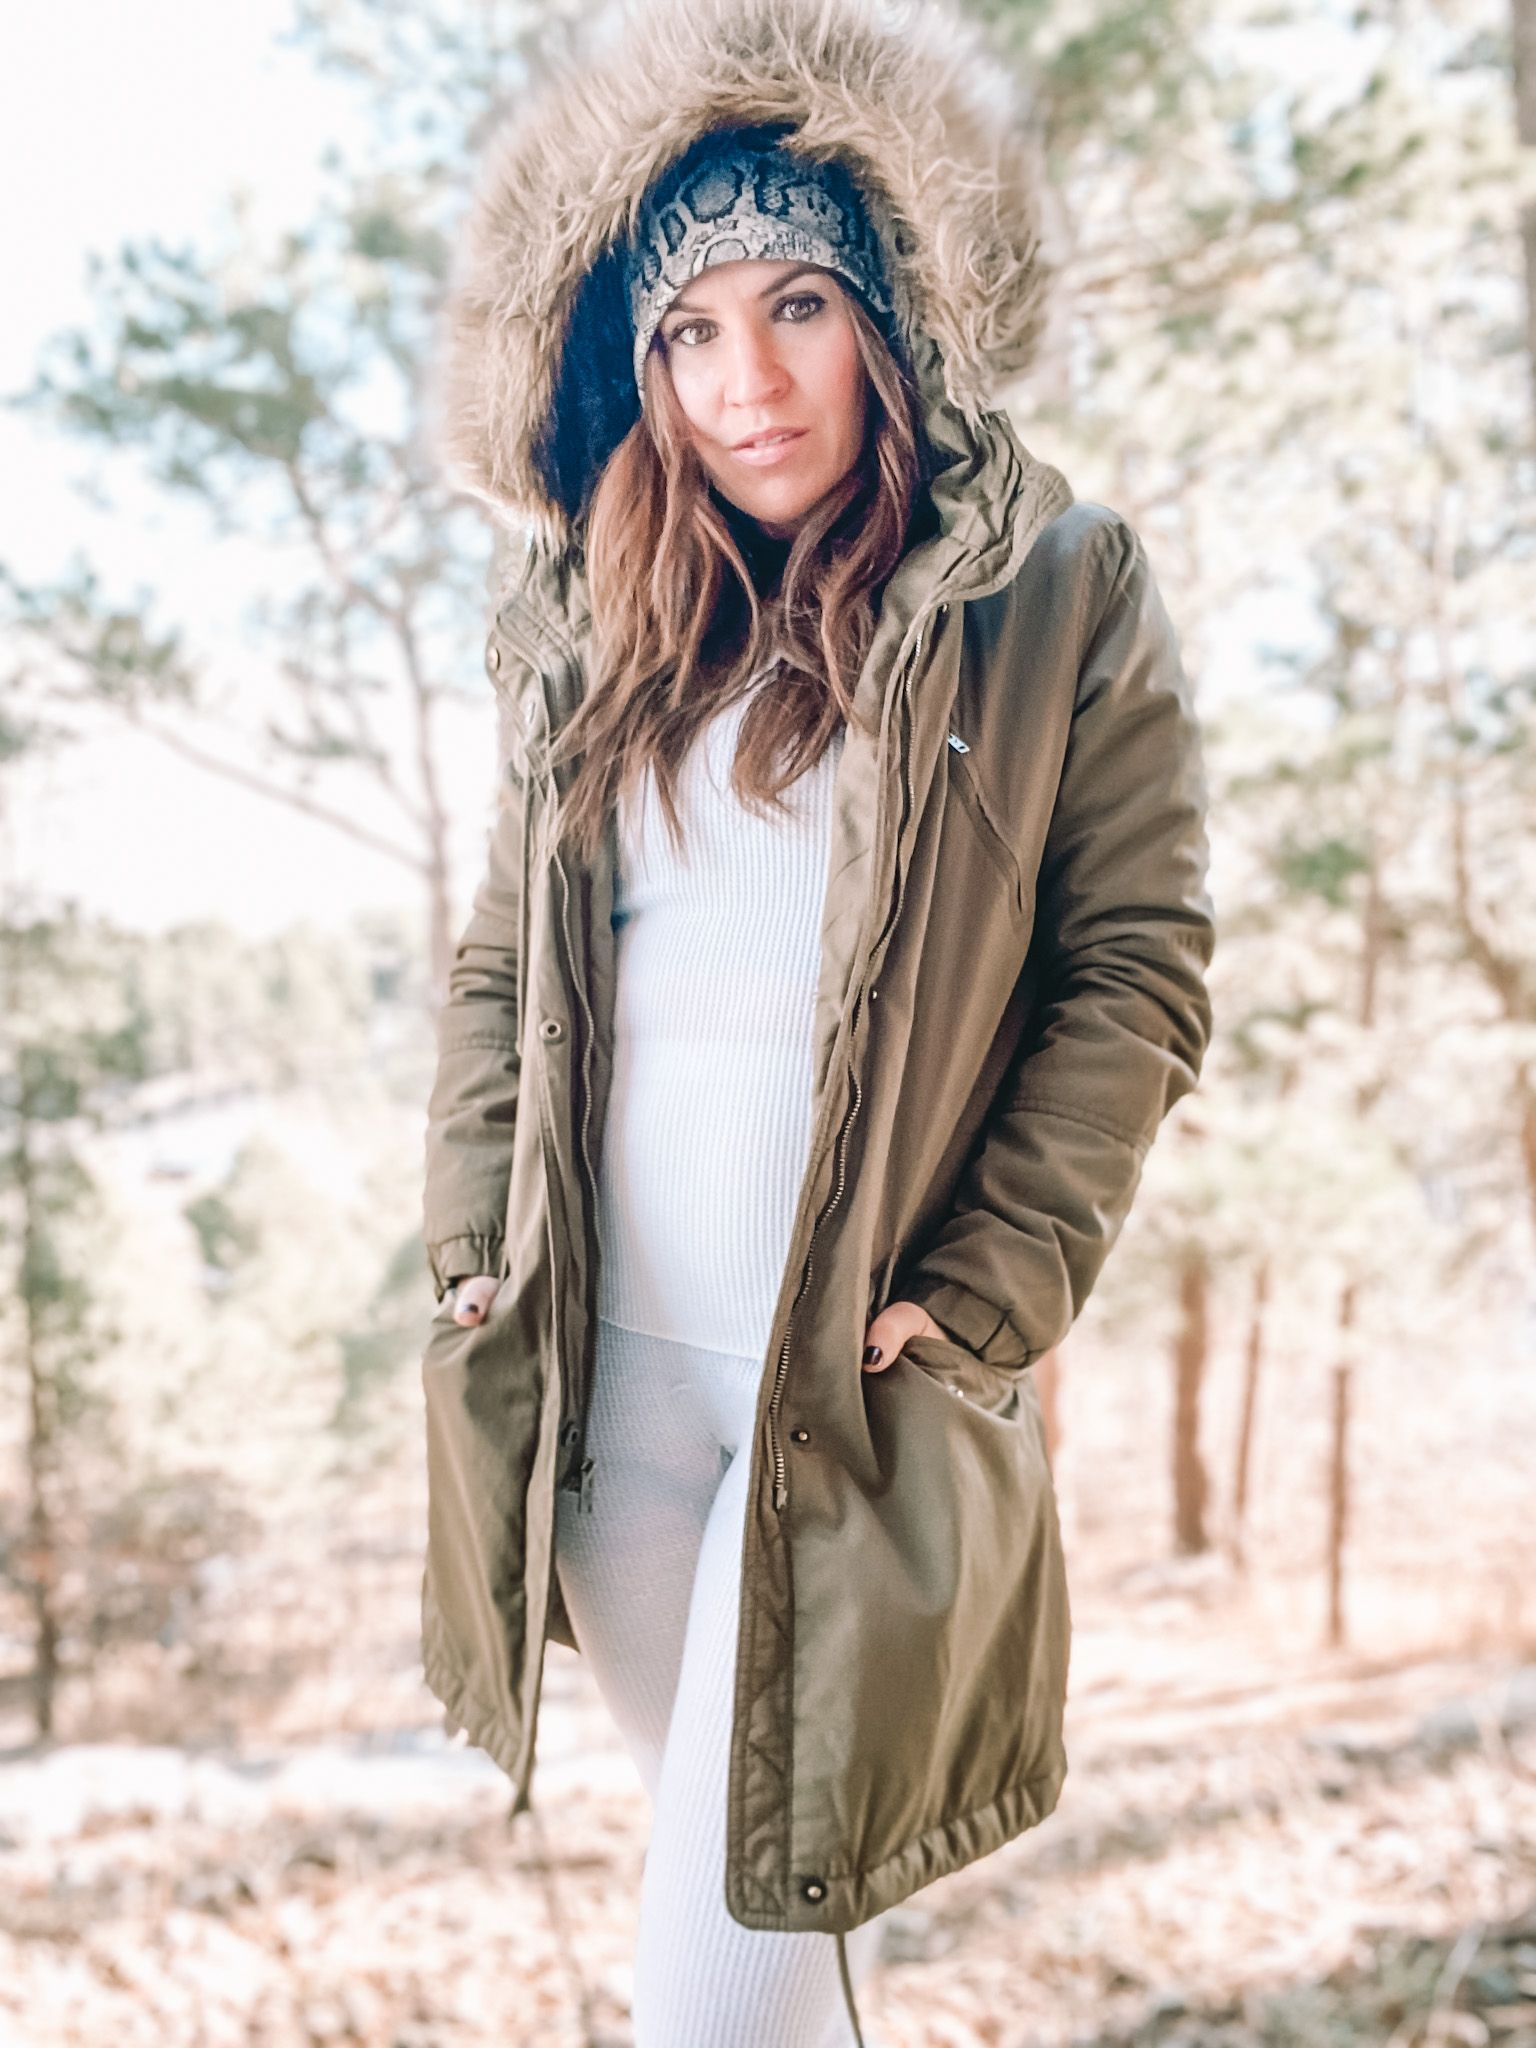 'Tis the season to be freezin' #americaneagle#instagood